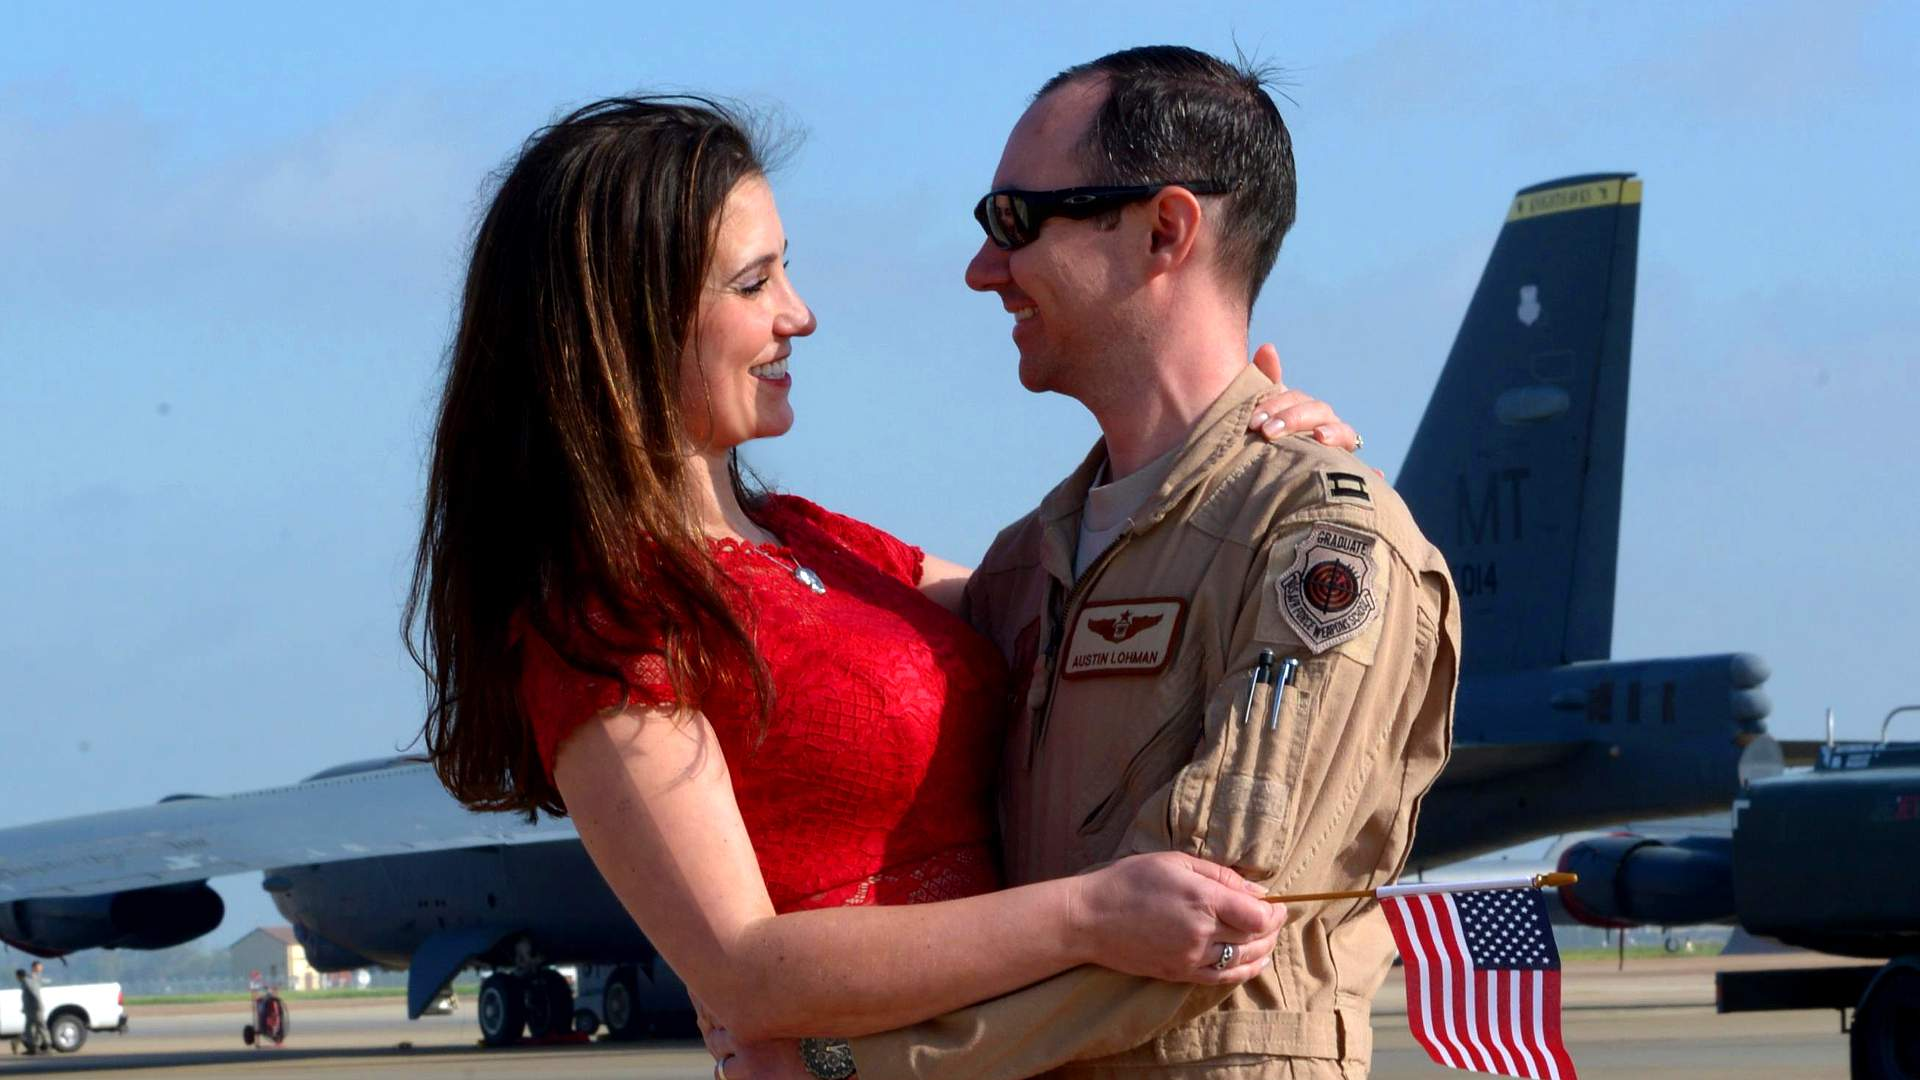 image of an air force pilot hugging his wife he is in his desert brown fatigues and she is wearing a tight red sweater, she is very attractive and very well endowed.